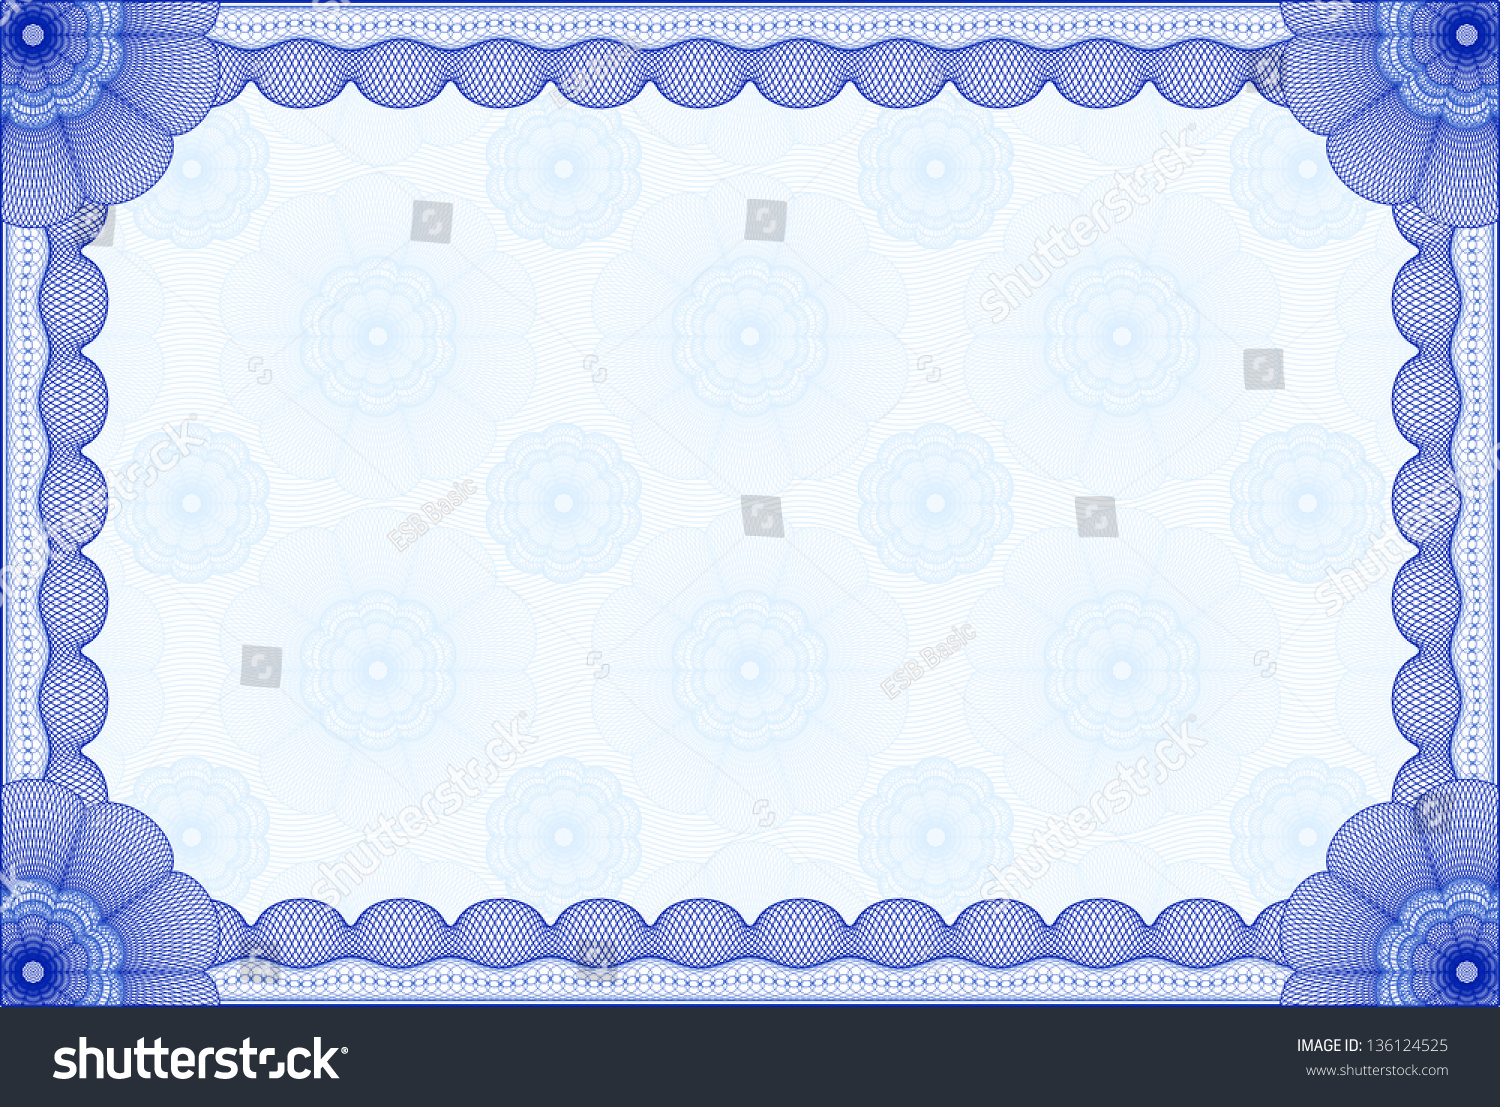 Blue Certificate Template With Background. Complex Design Stock Vector ...